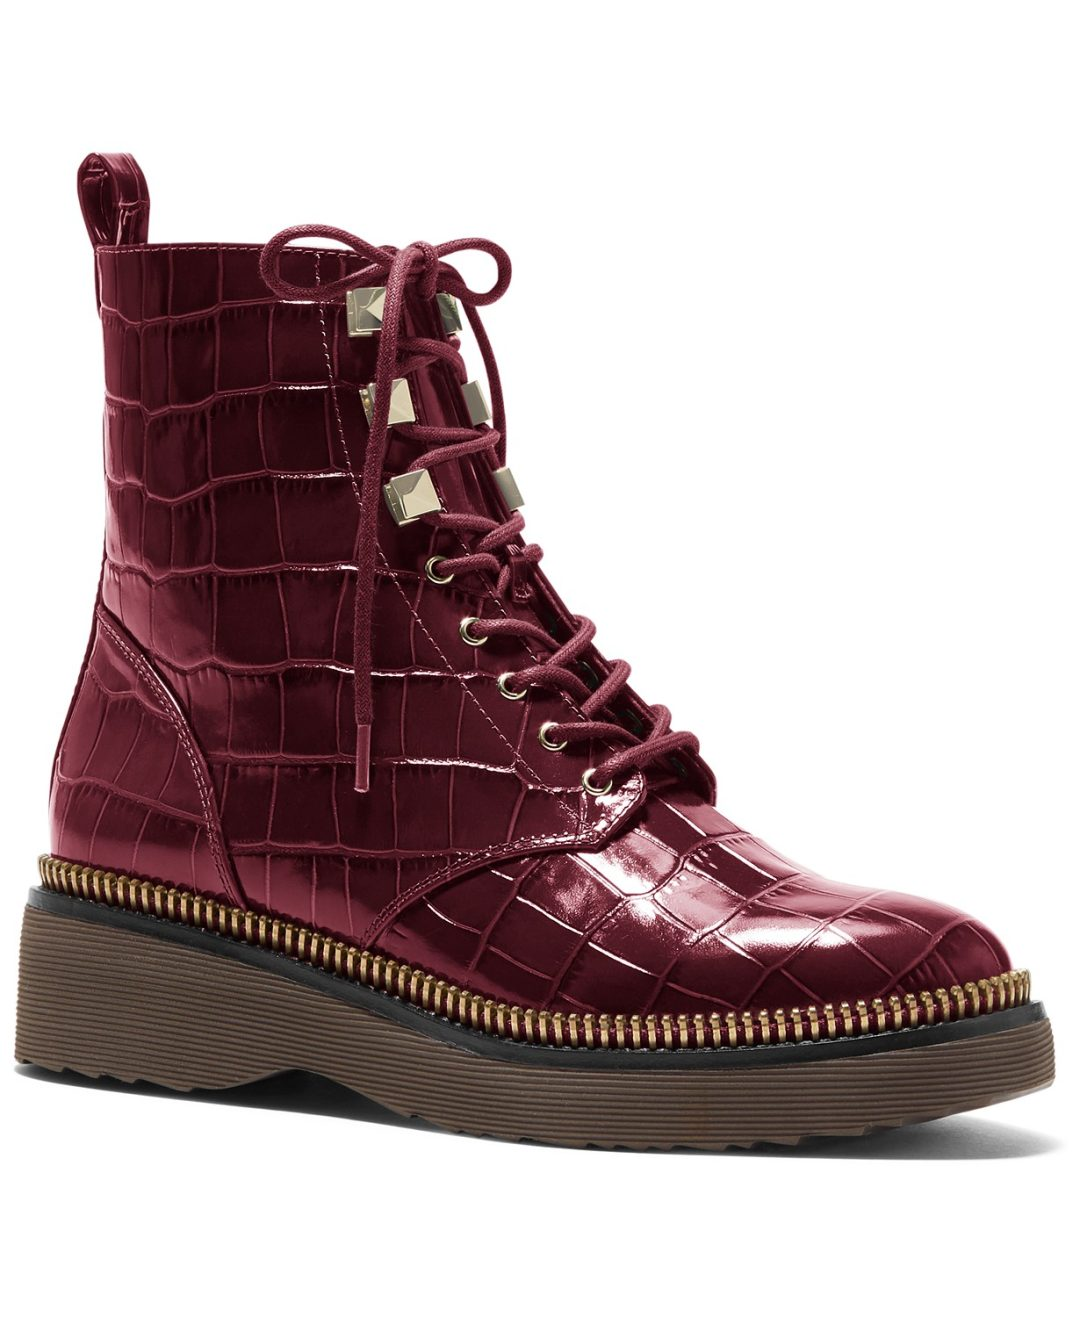 The best crocodile patent alternatives to Dr. Martens boots